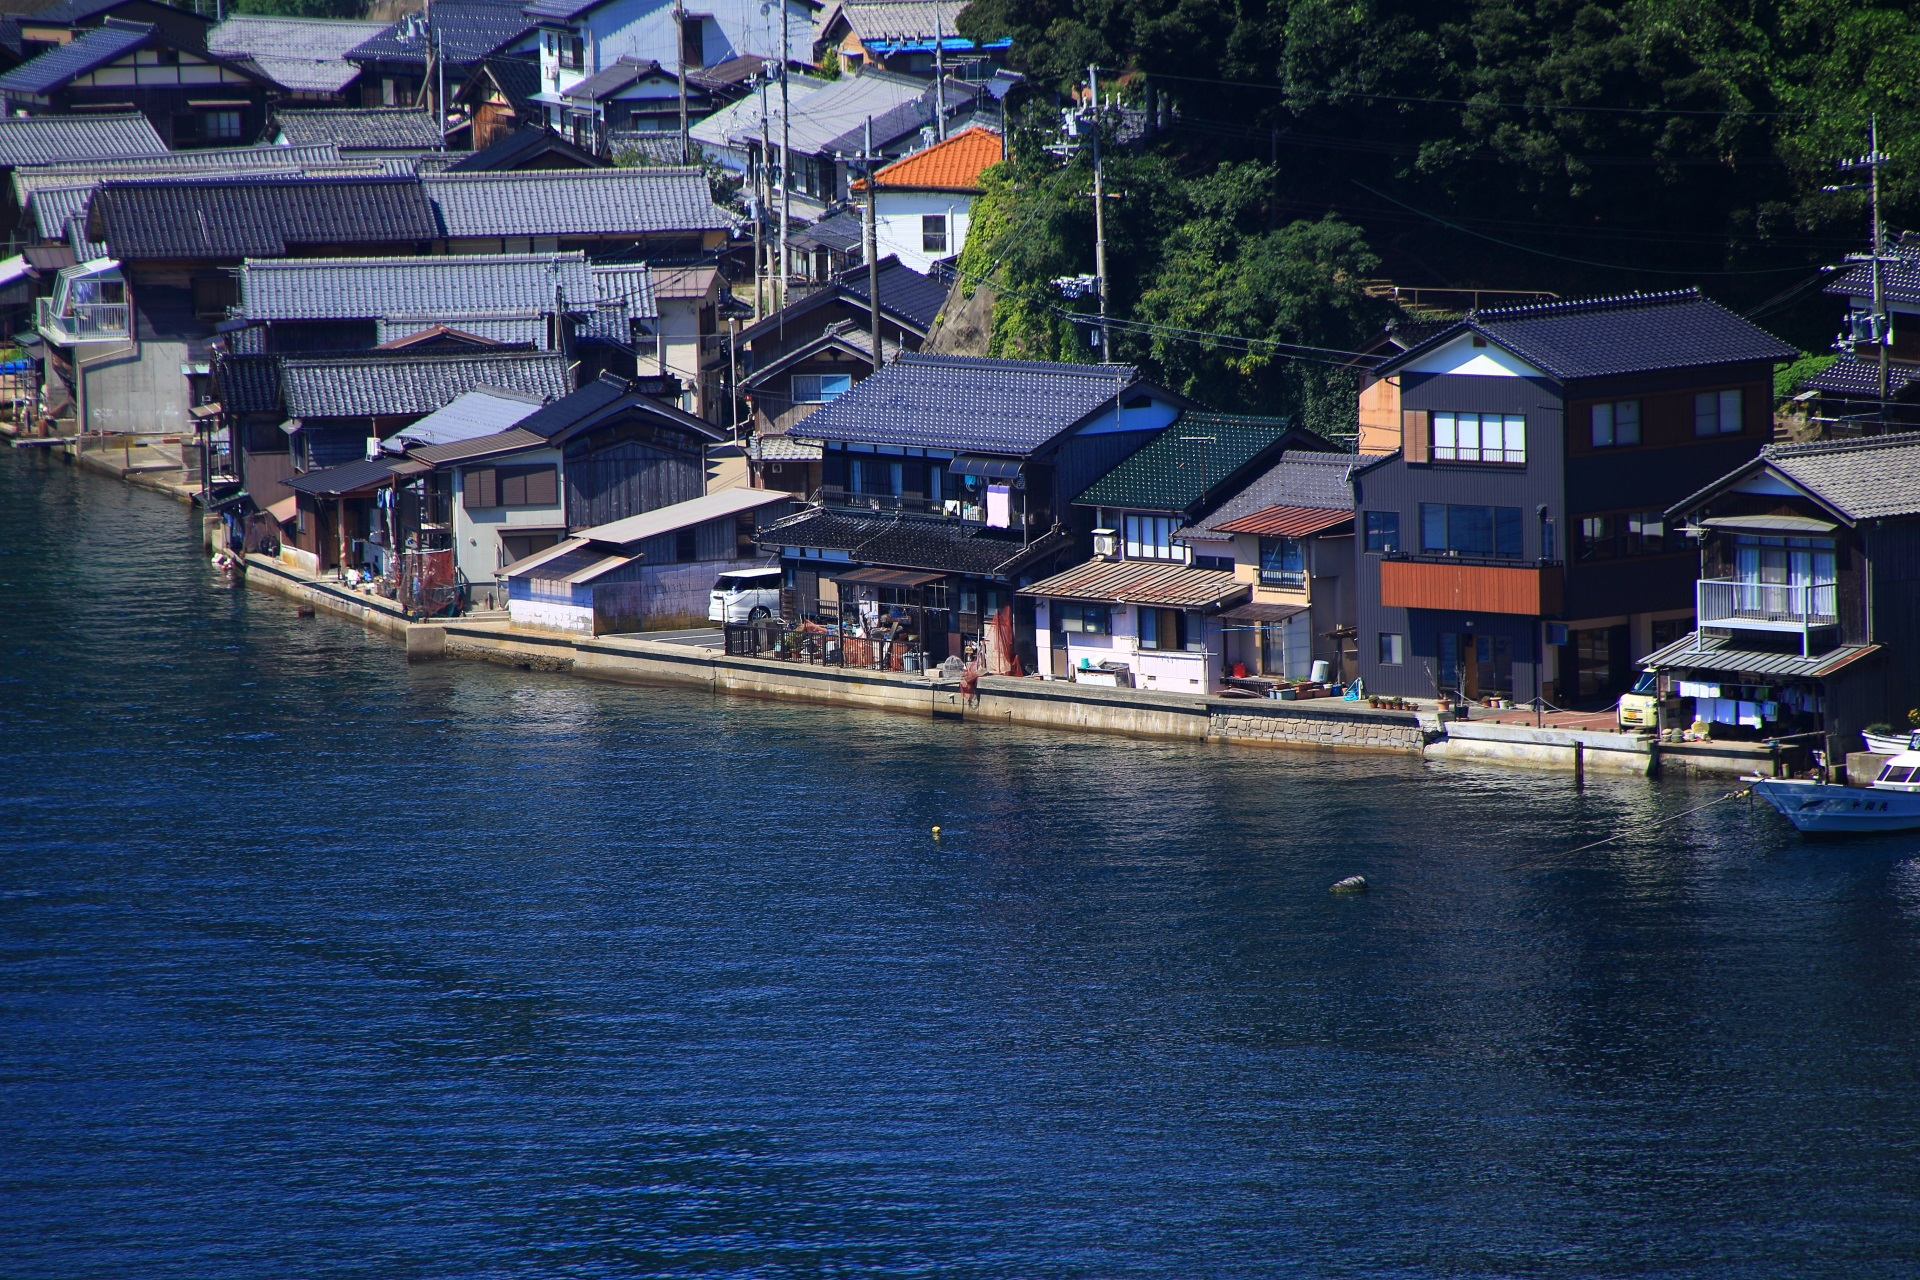 Ine-no-Funaya in Kyoto by the sea